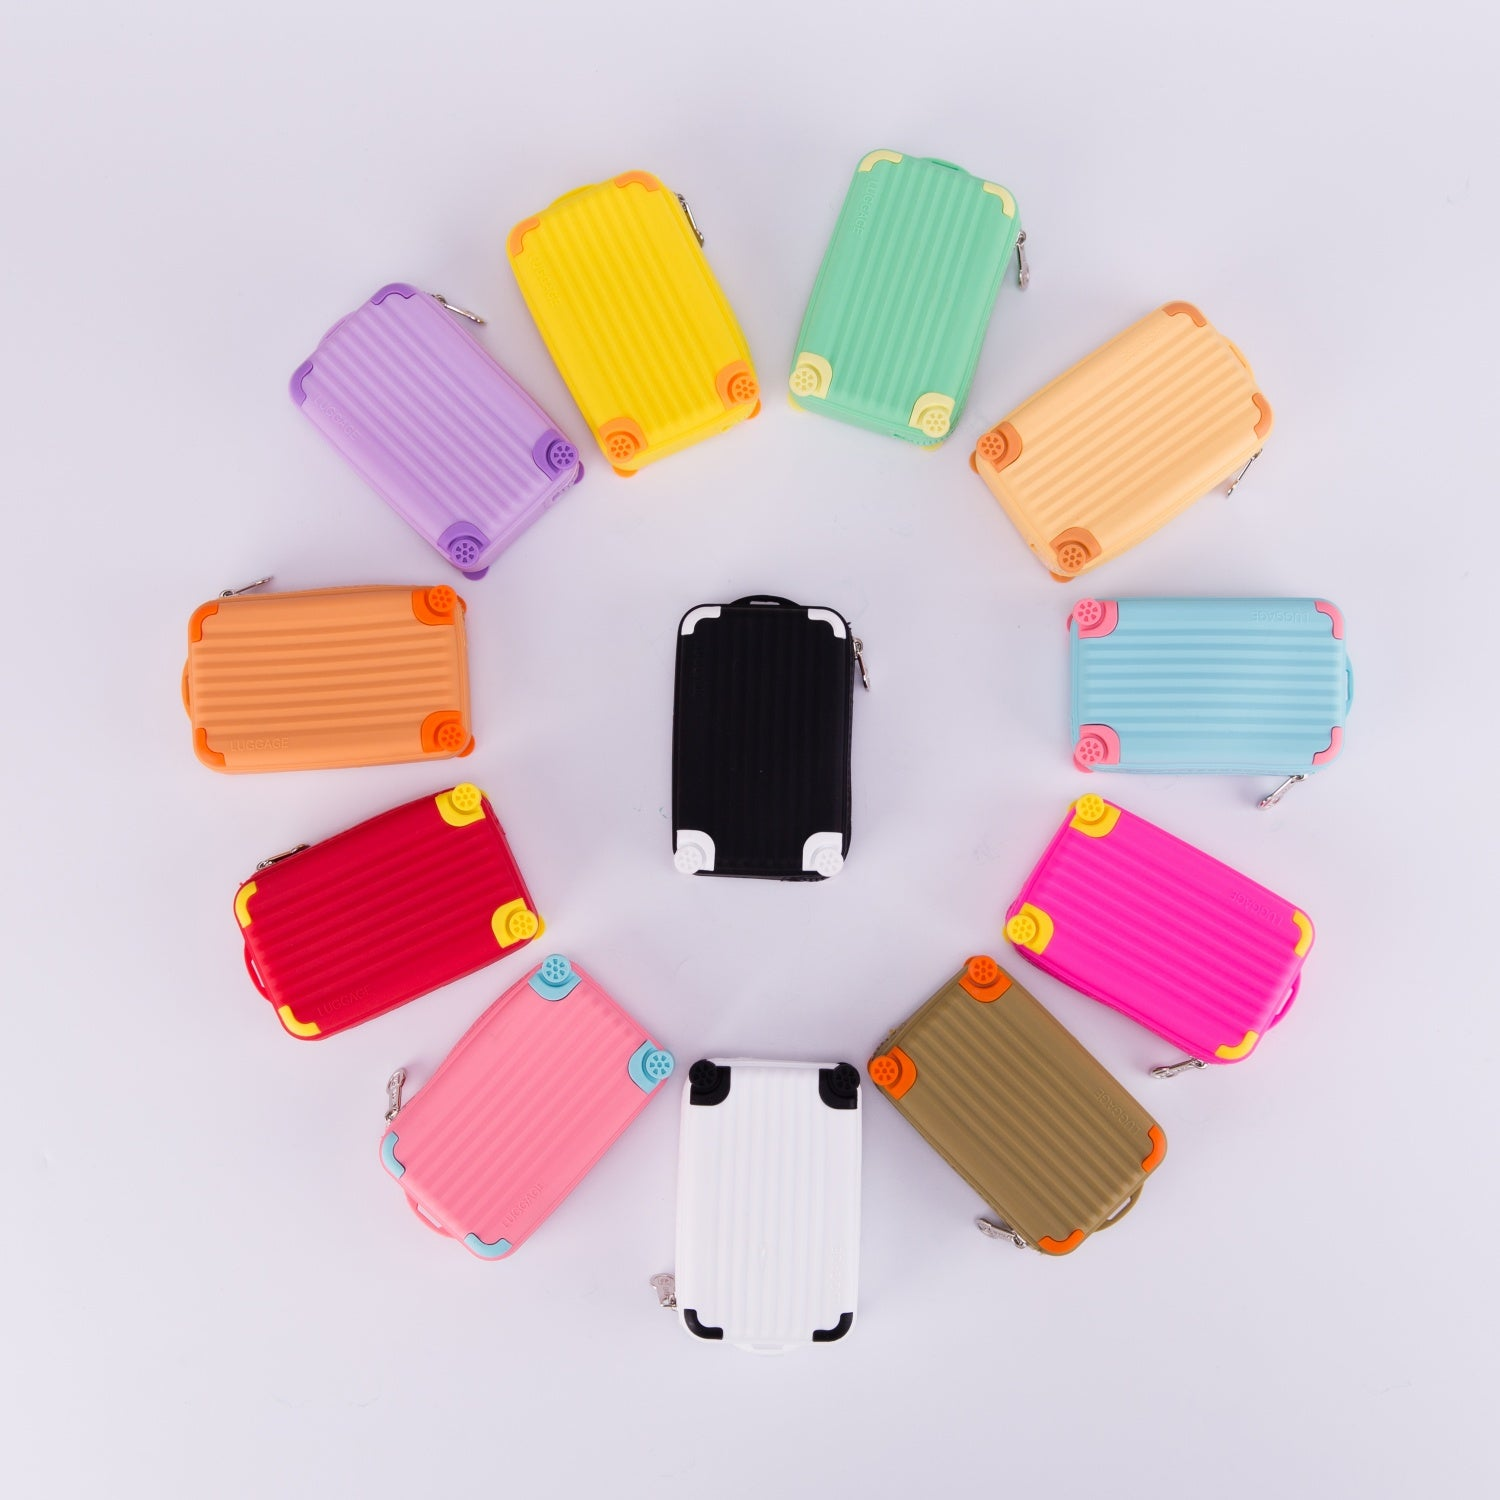 LUGGAGE SOFT SILICONE COIN PURSE